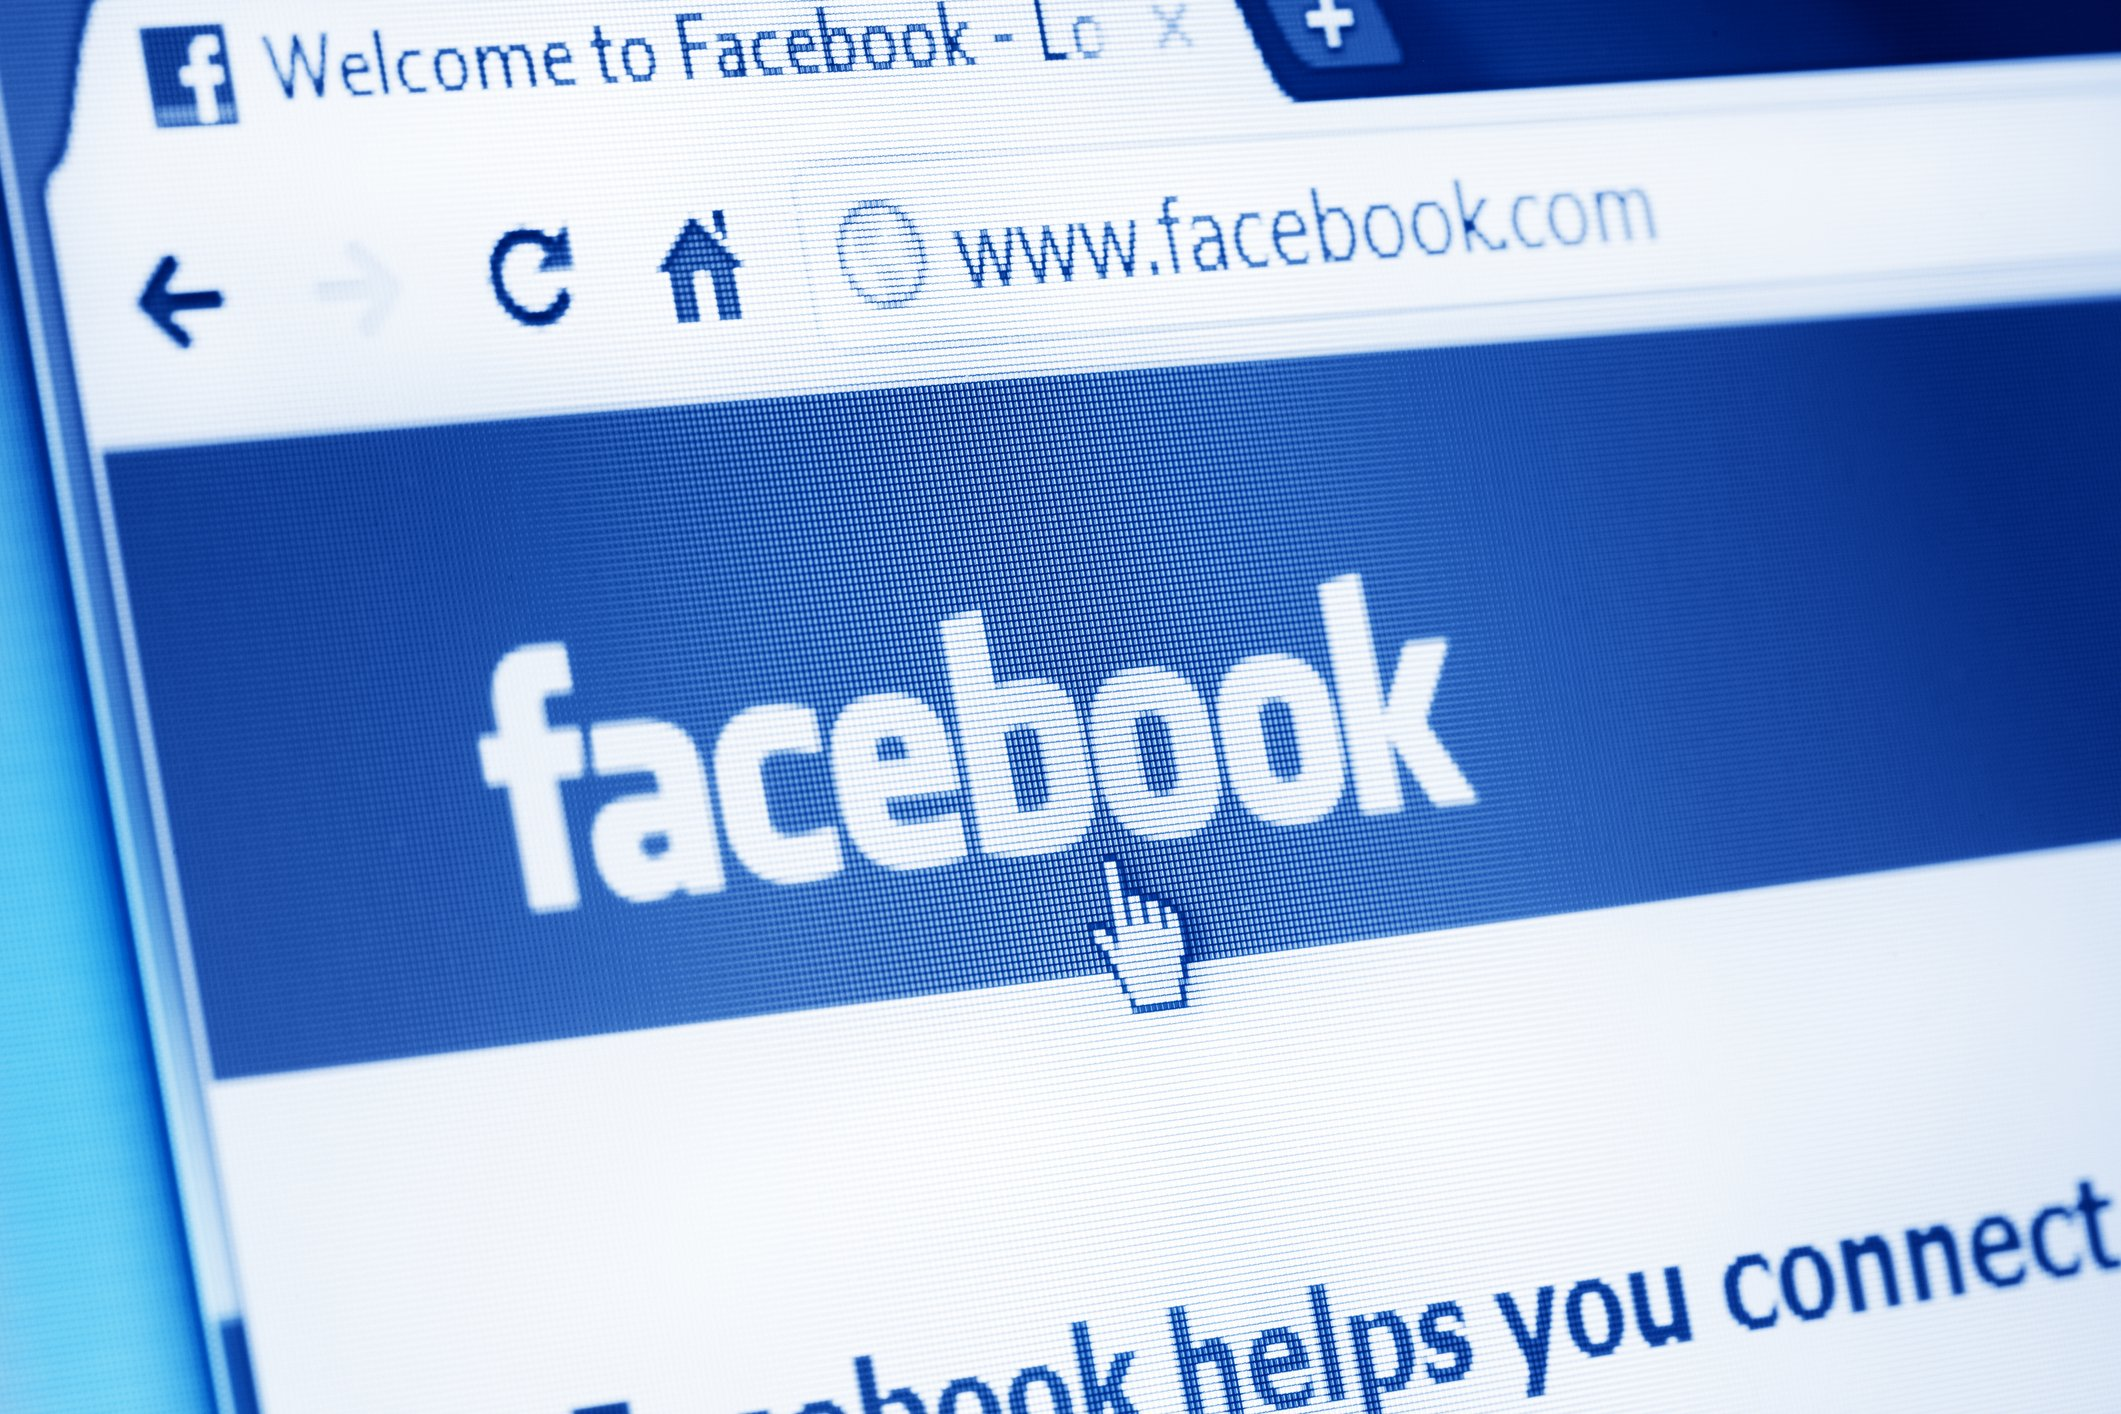 Sales – Want to advertise on Facebook and generate more sales?